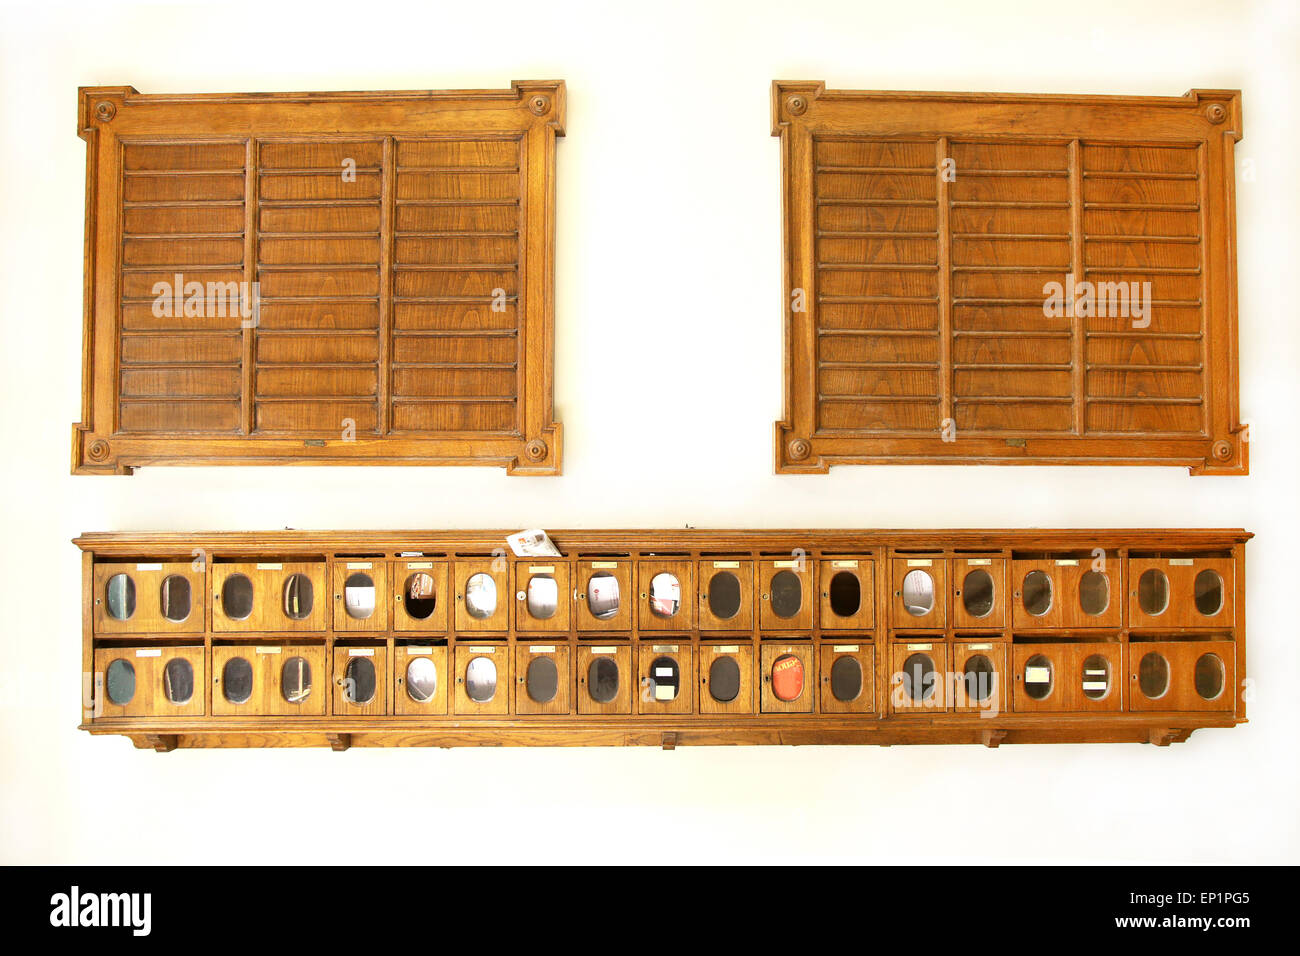 vintage wooden mailboxes and board for apartments and tenants list - Stock Image